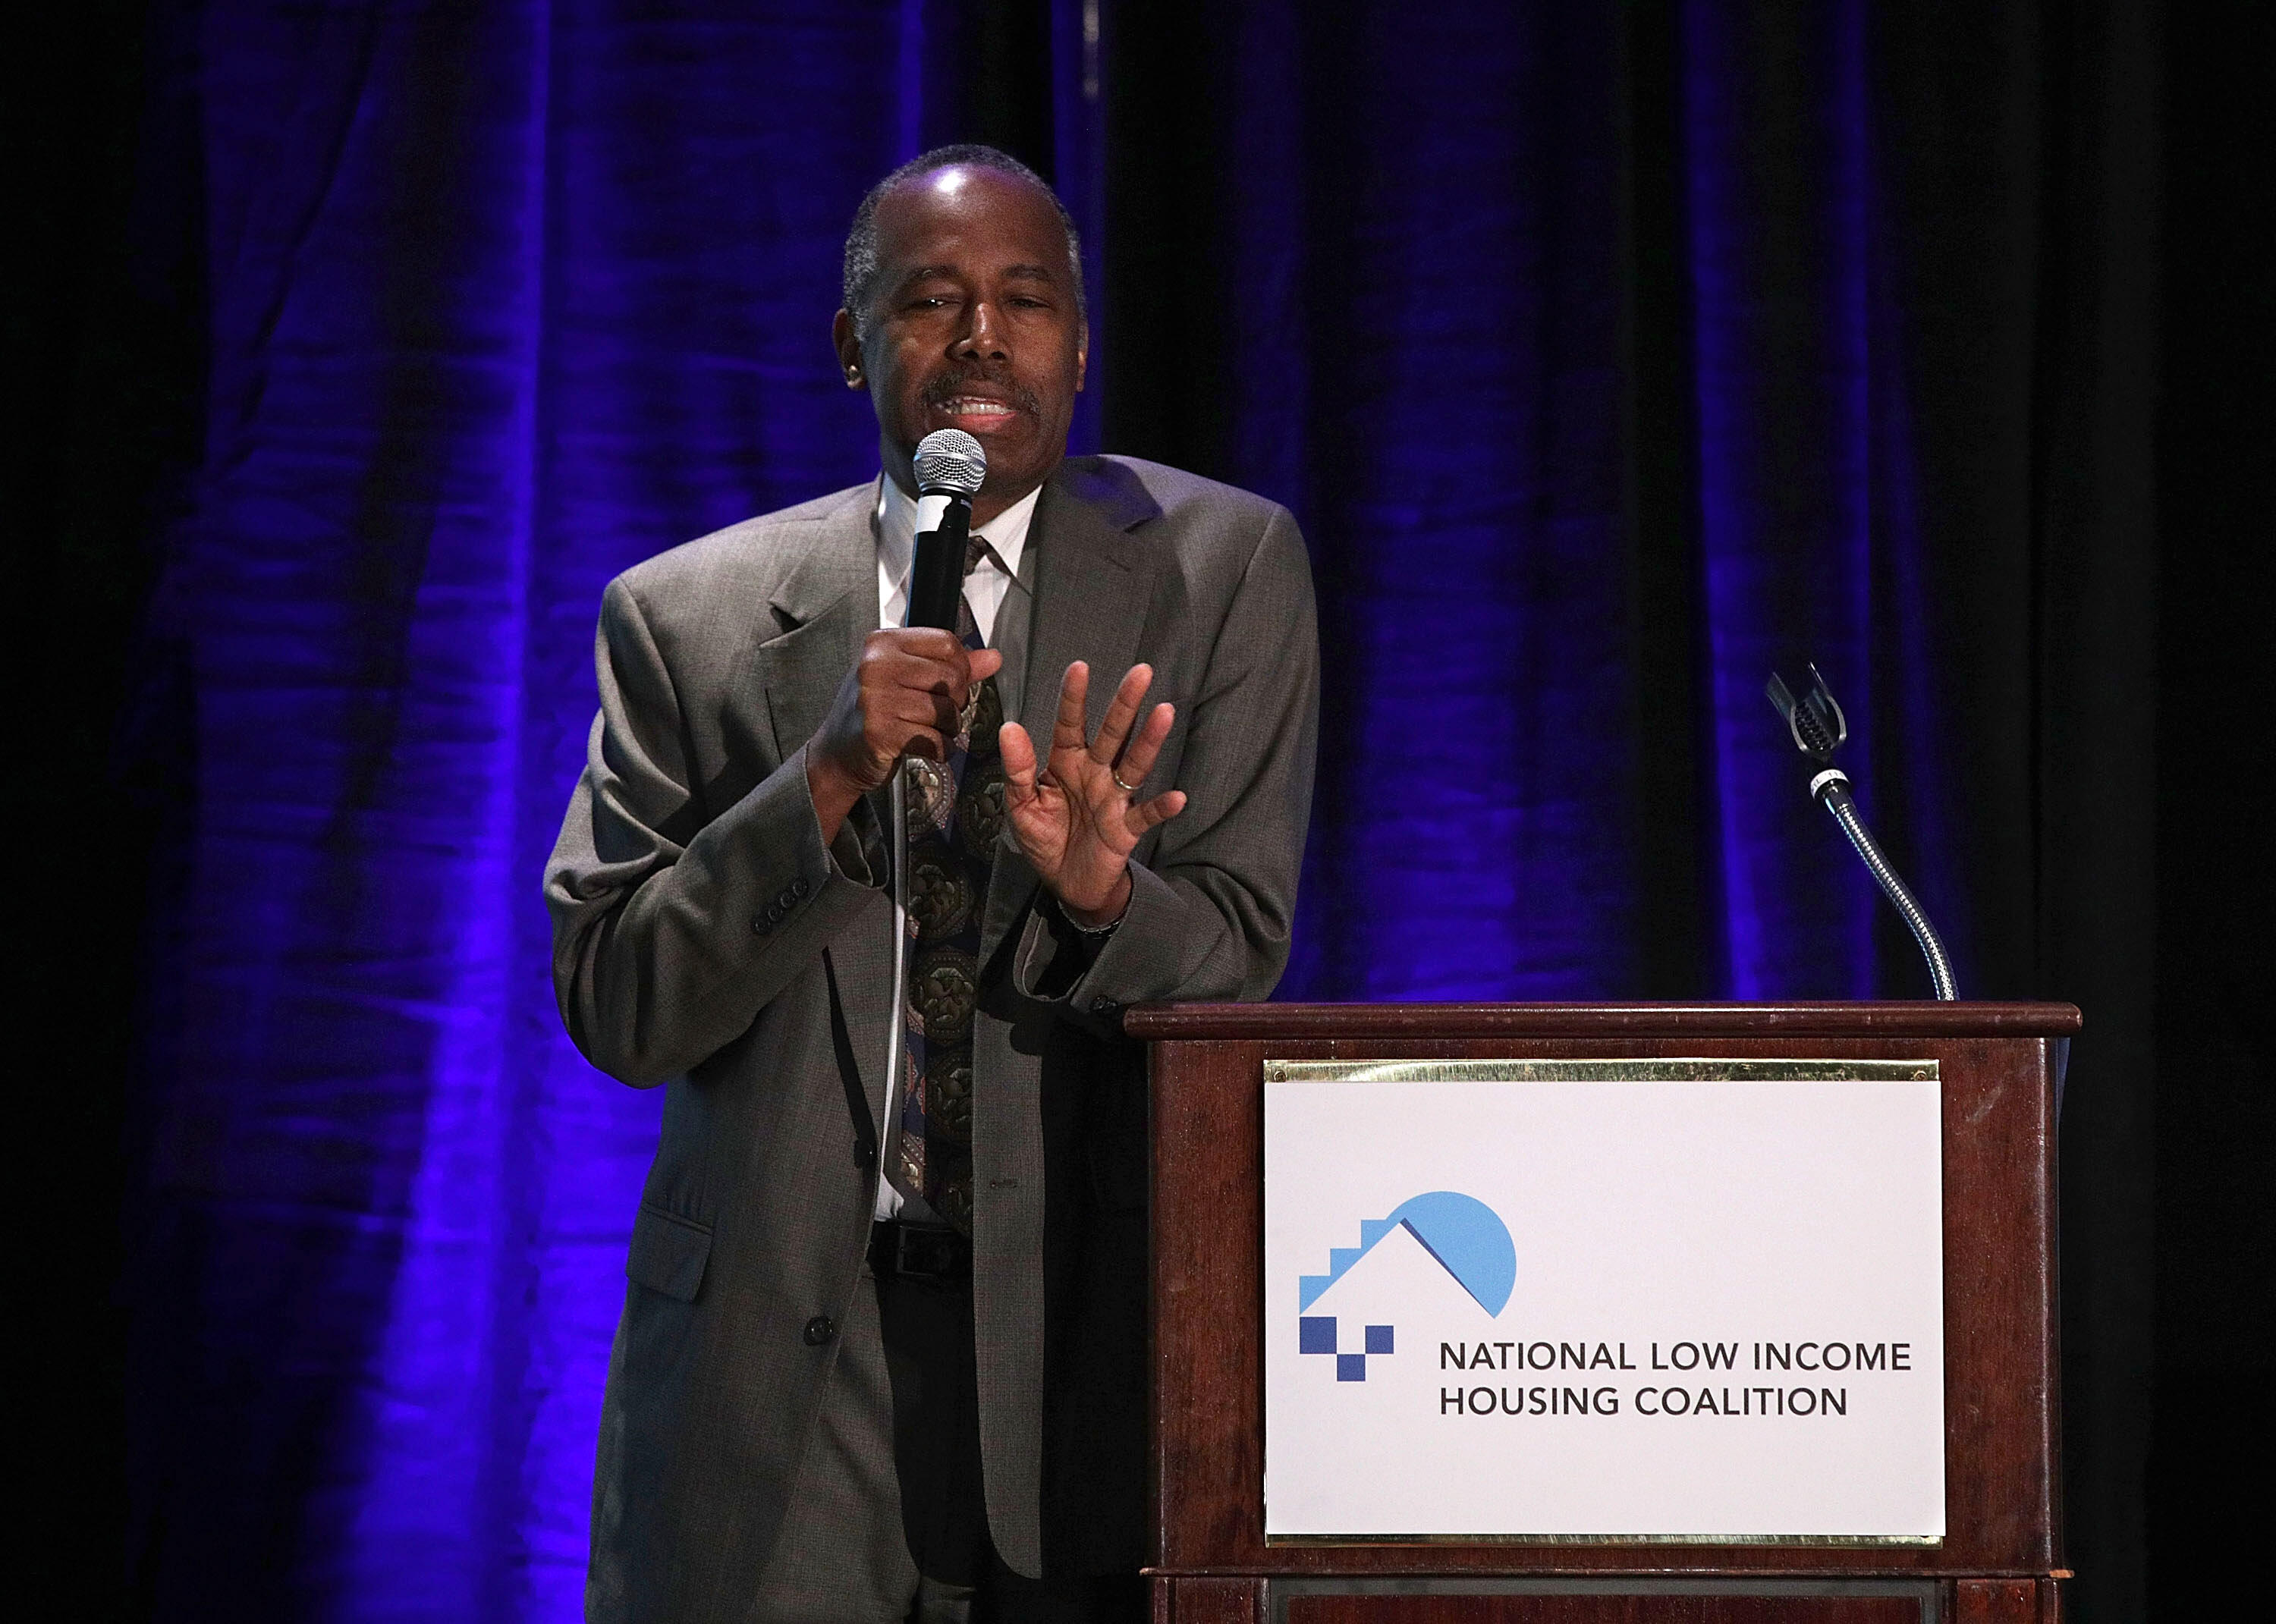 WASHINGTON, DC - APRIL 03:  U.S. Secretary of Housing and Urban Development Ben Carson delivers the keynote speech during a conference luncheon hosted by National Low Income Housing Coalition April 3, 2017 in Washington, DC. Secretary Carson addressed the